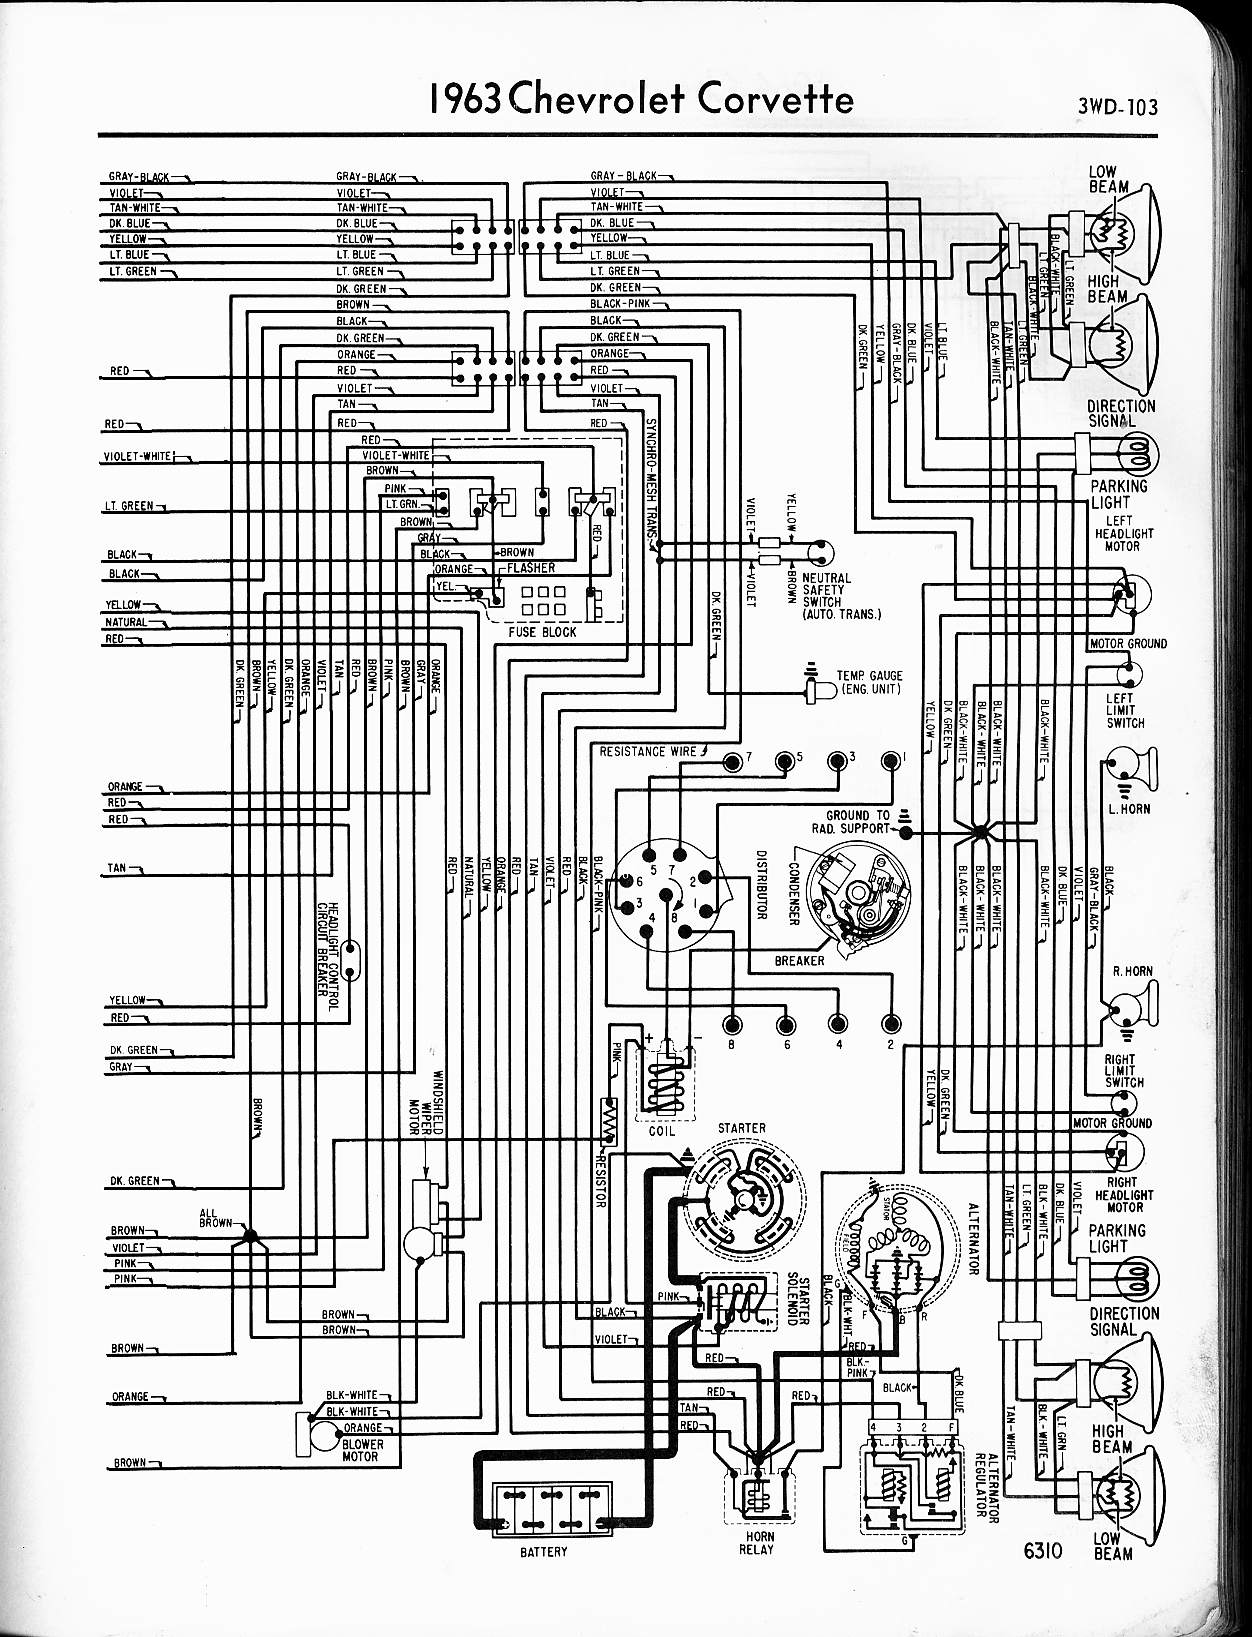 57 65 chevy wiring diagramsWiring Diagram For 1963 Chevrolet Corvette Part 1 #3